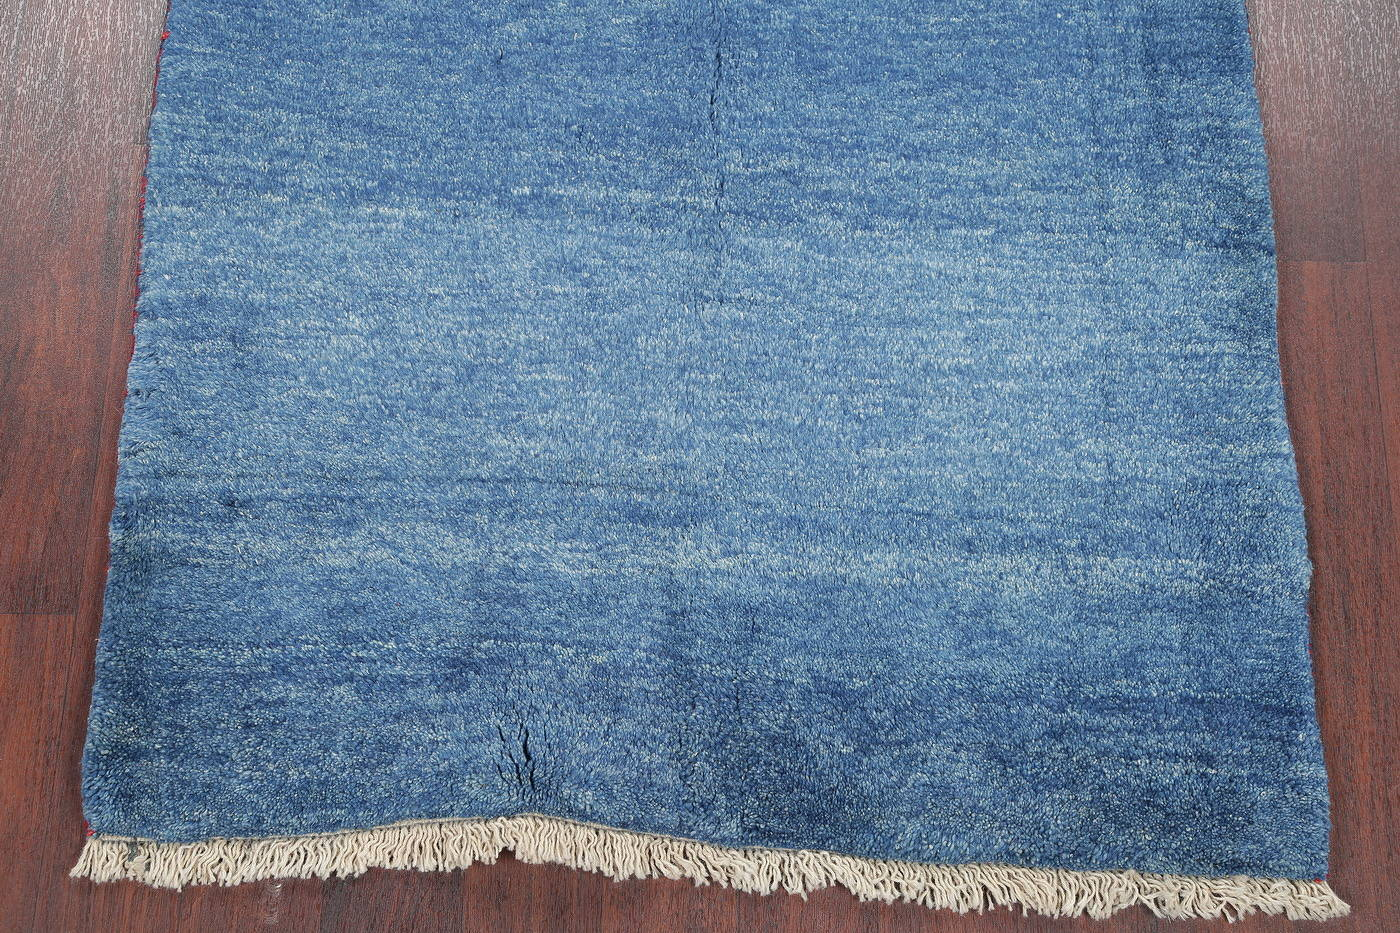 Hand-Knotted Solid Blue Gabbeh Shiraz Persian Area Rug 4x6